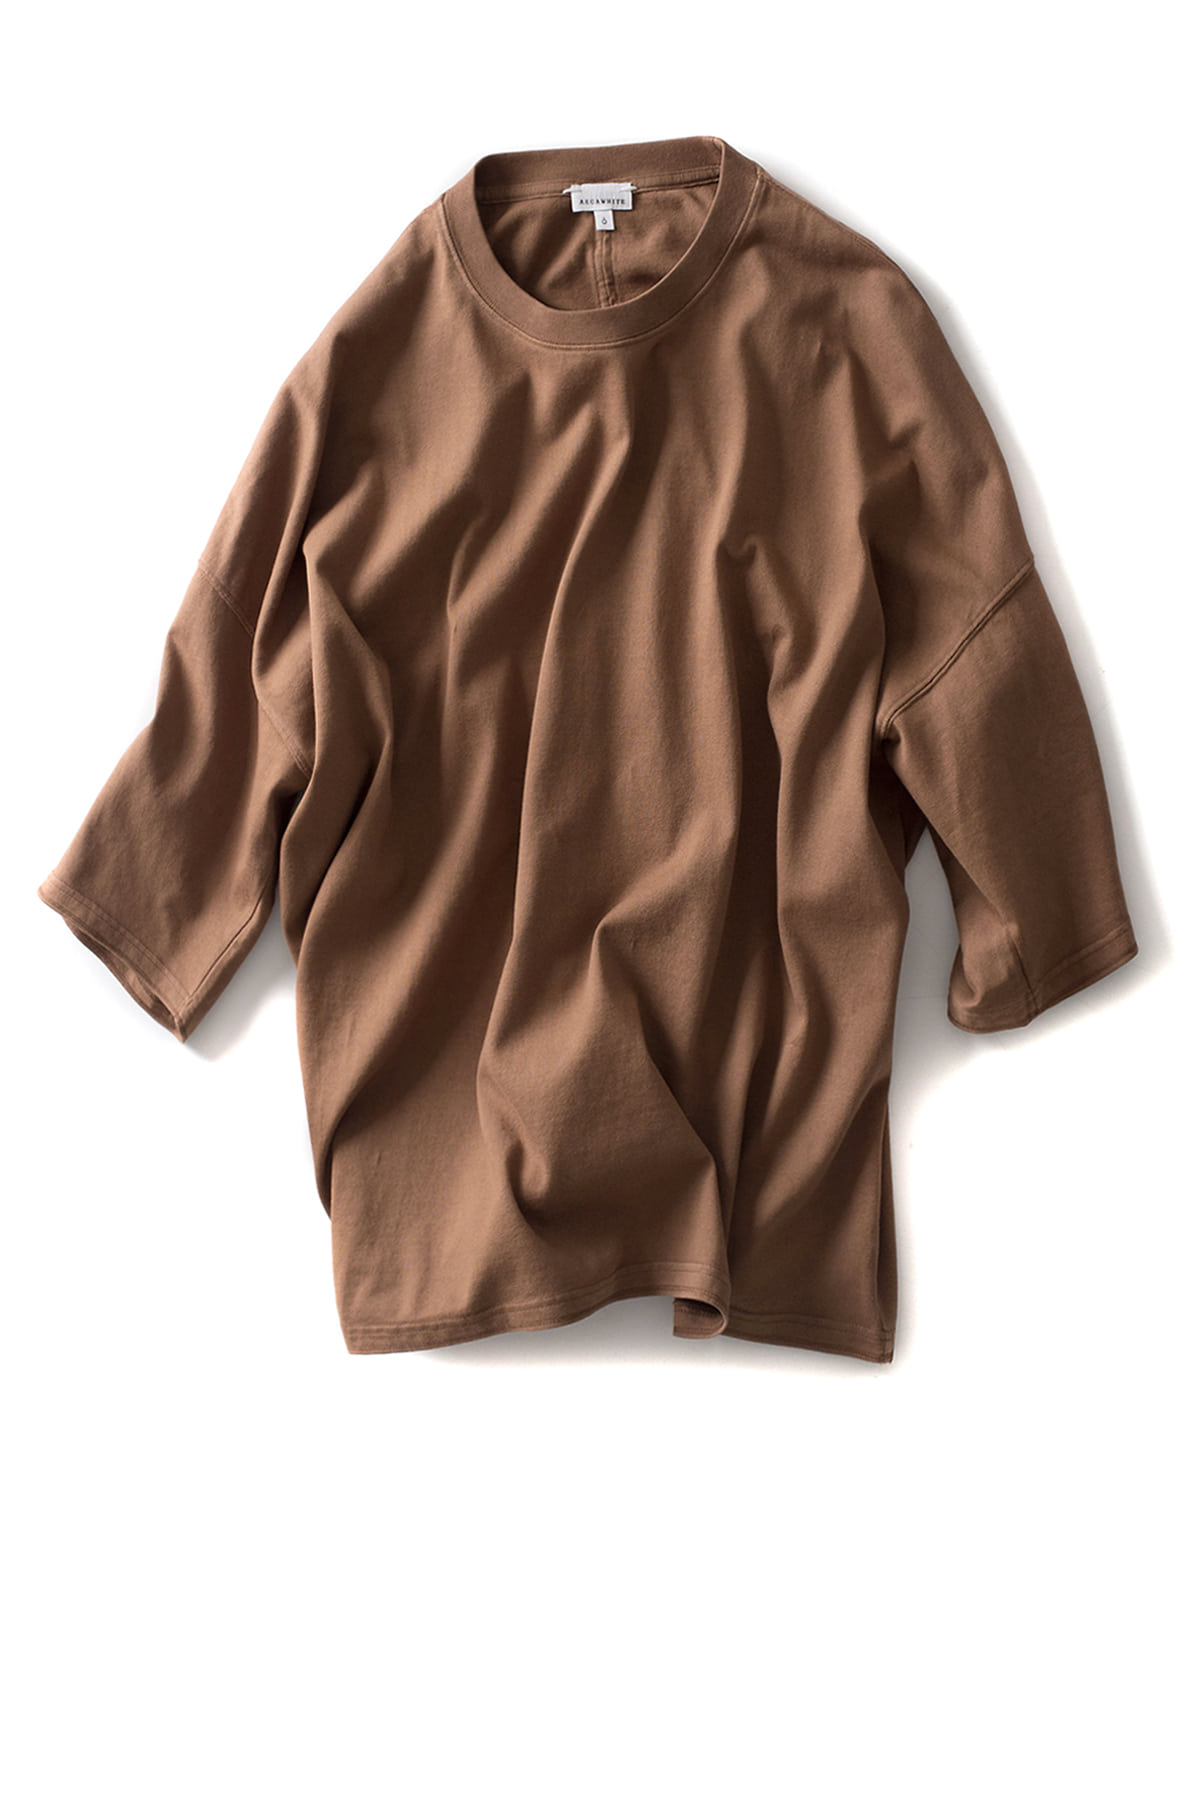 AECA WHITE x IAMSHOP Exclusive : Oversize Half Sleeve Sweat (Brown)